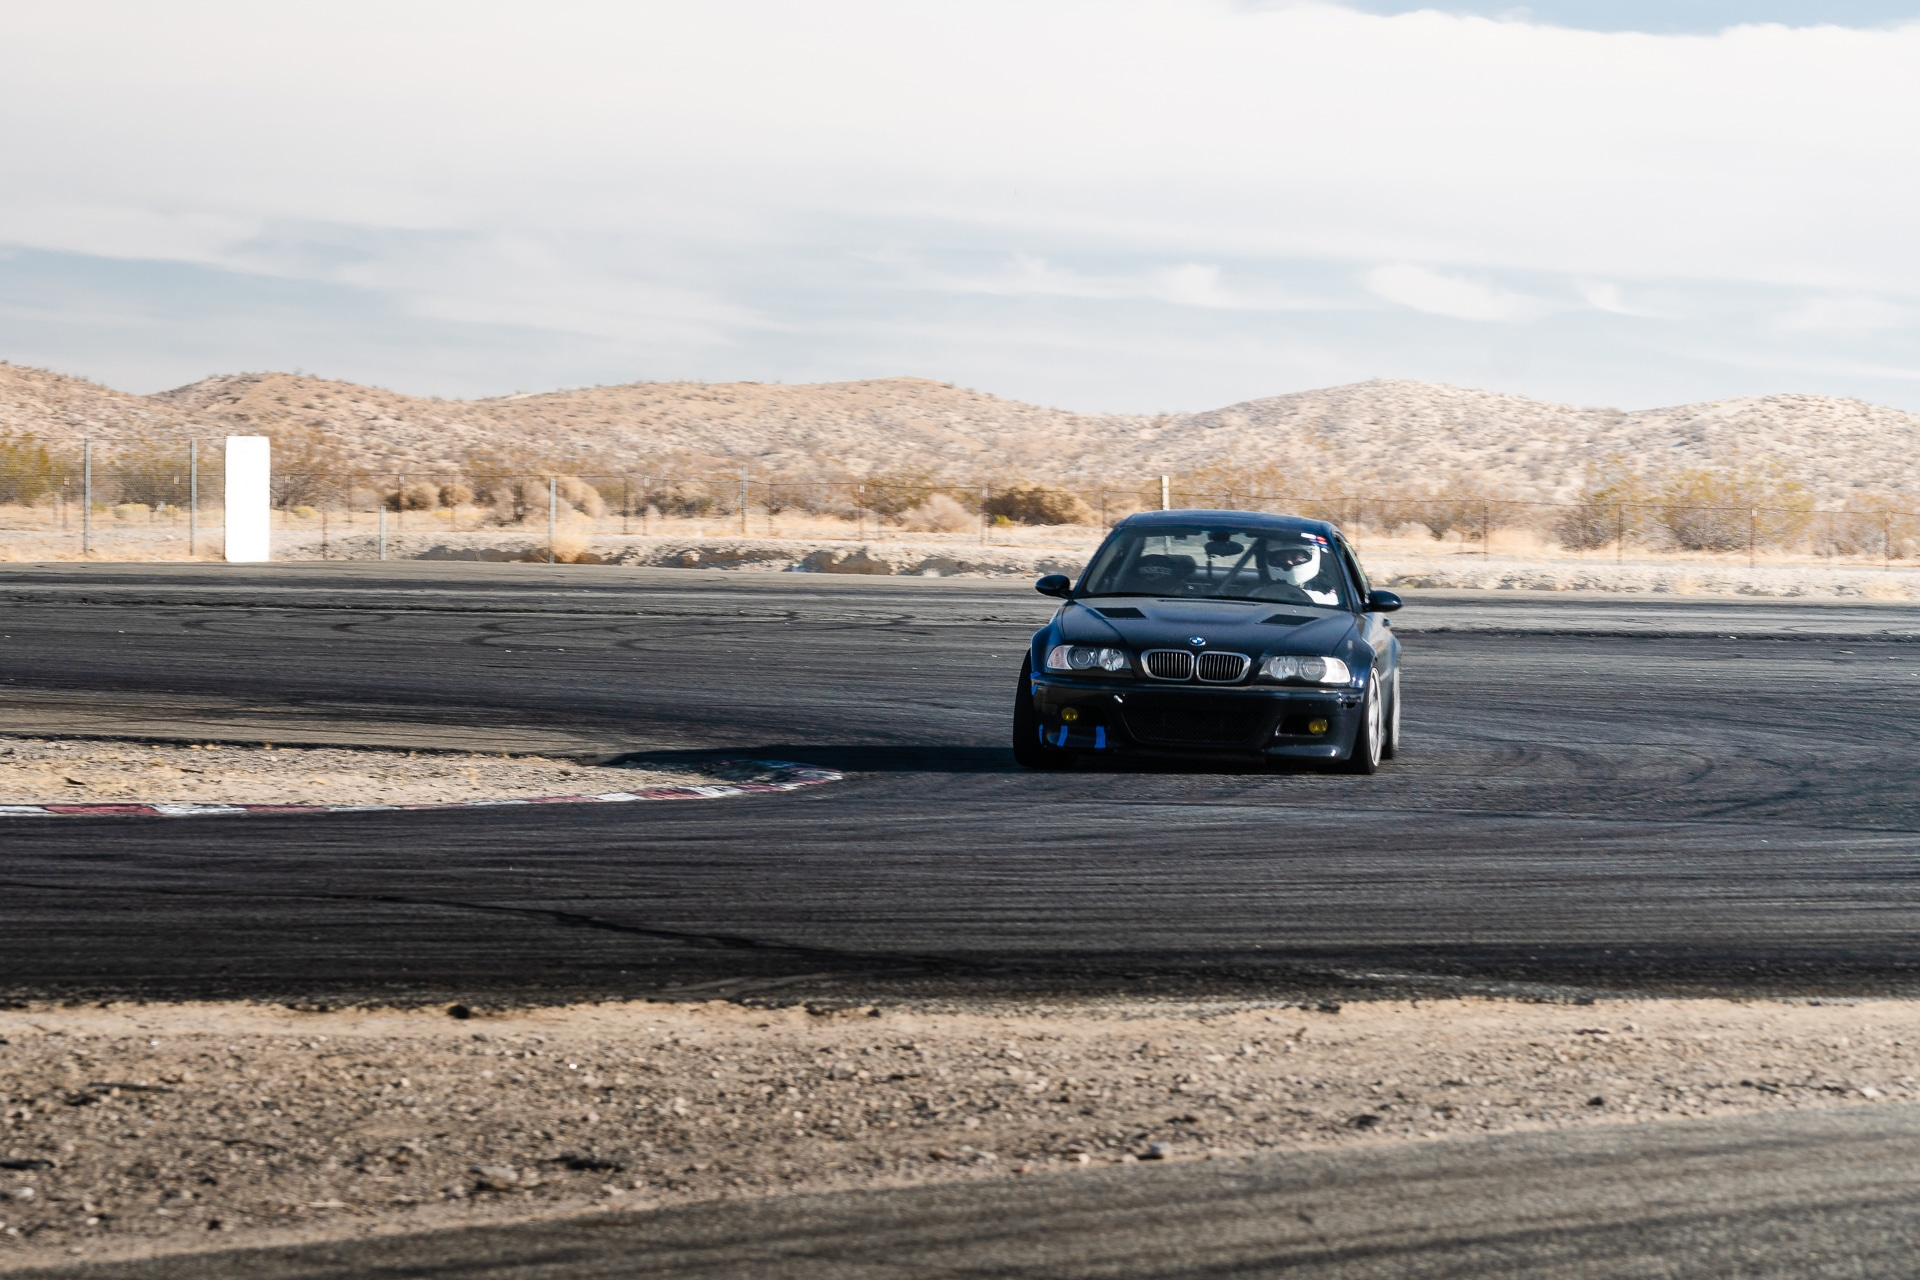 Streets Of Willow >> Willow Springs International Raceway Streets Of Willow